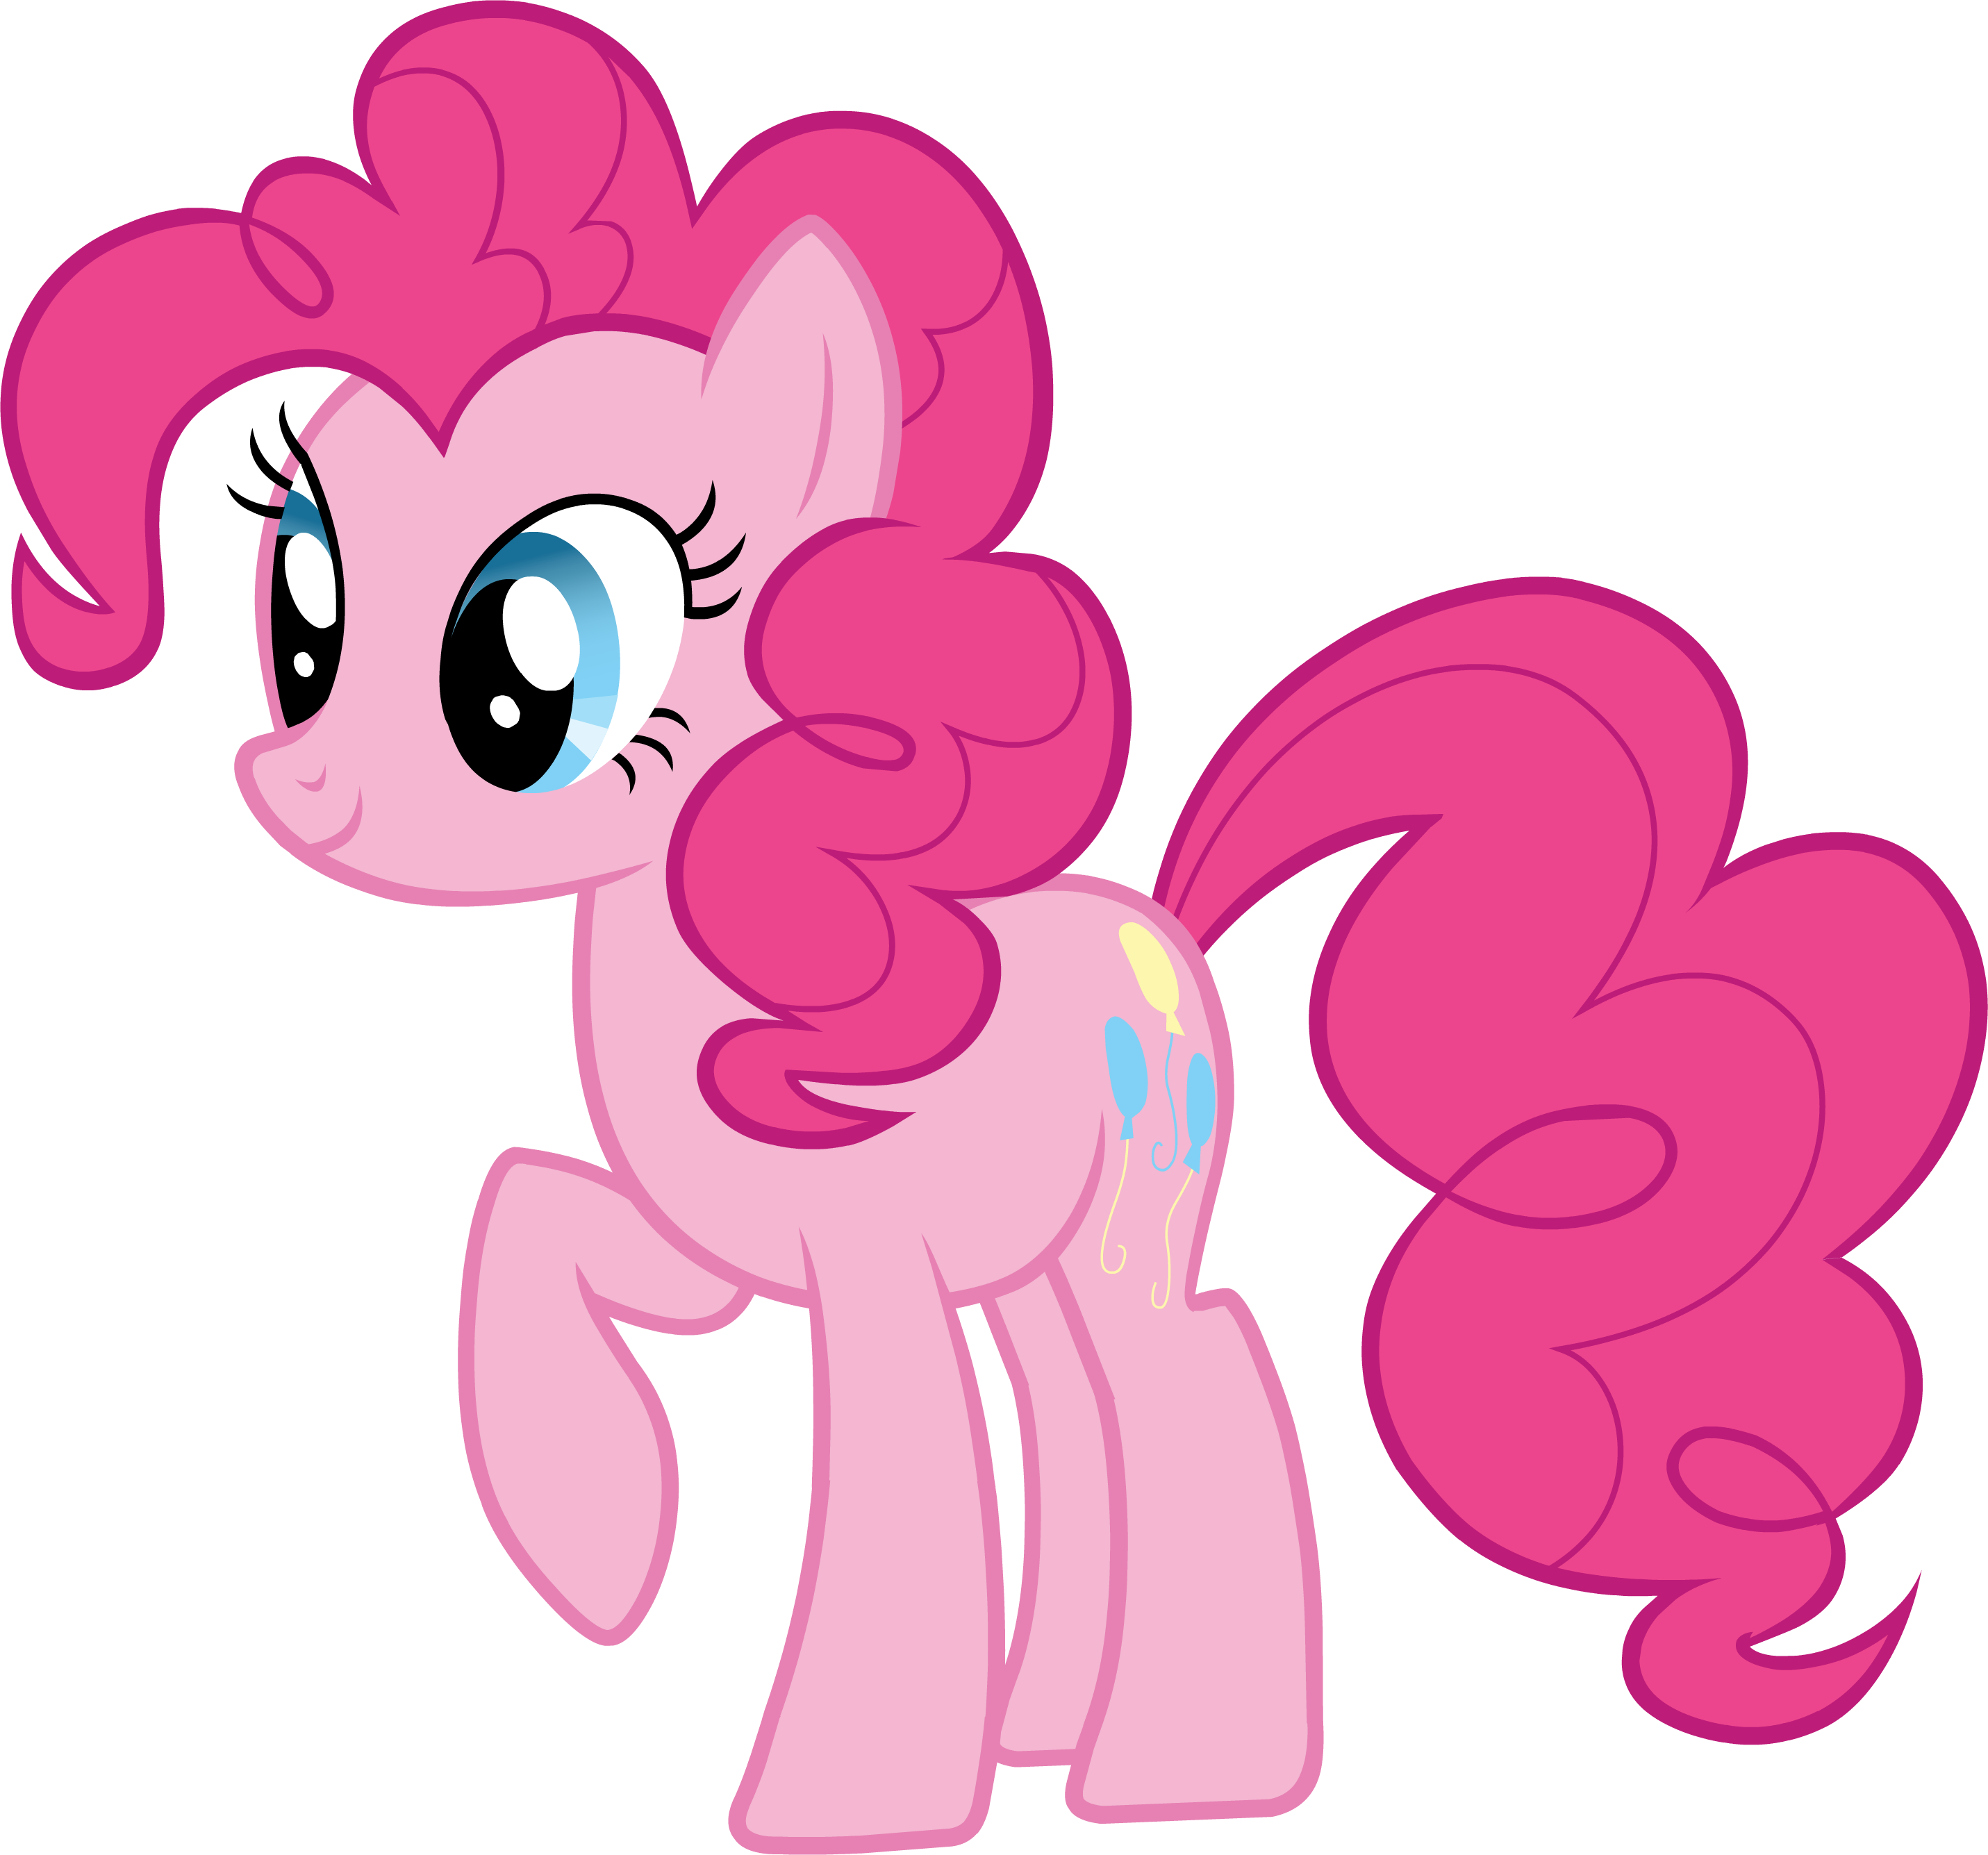 Pinkie pie halloween clipart picture freeuse stock Pinkie Pie Hair | Pinterest | Pinkie pie, Pies and Pony picture freeuse stock